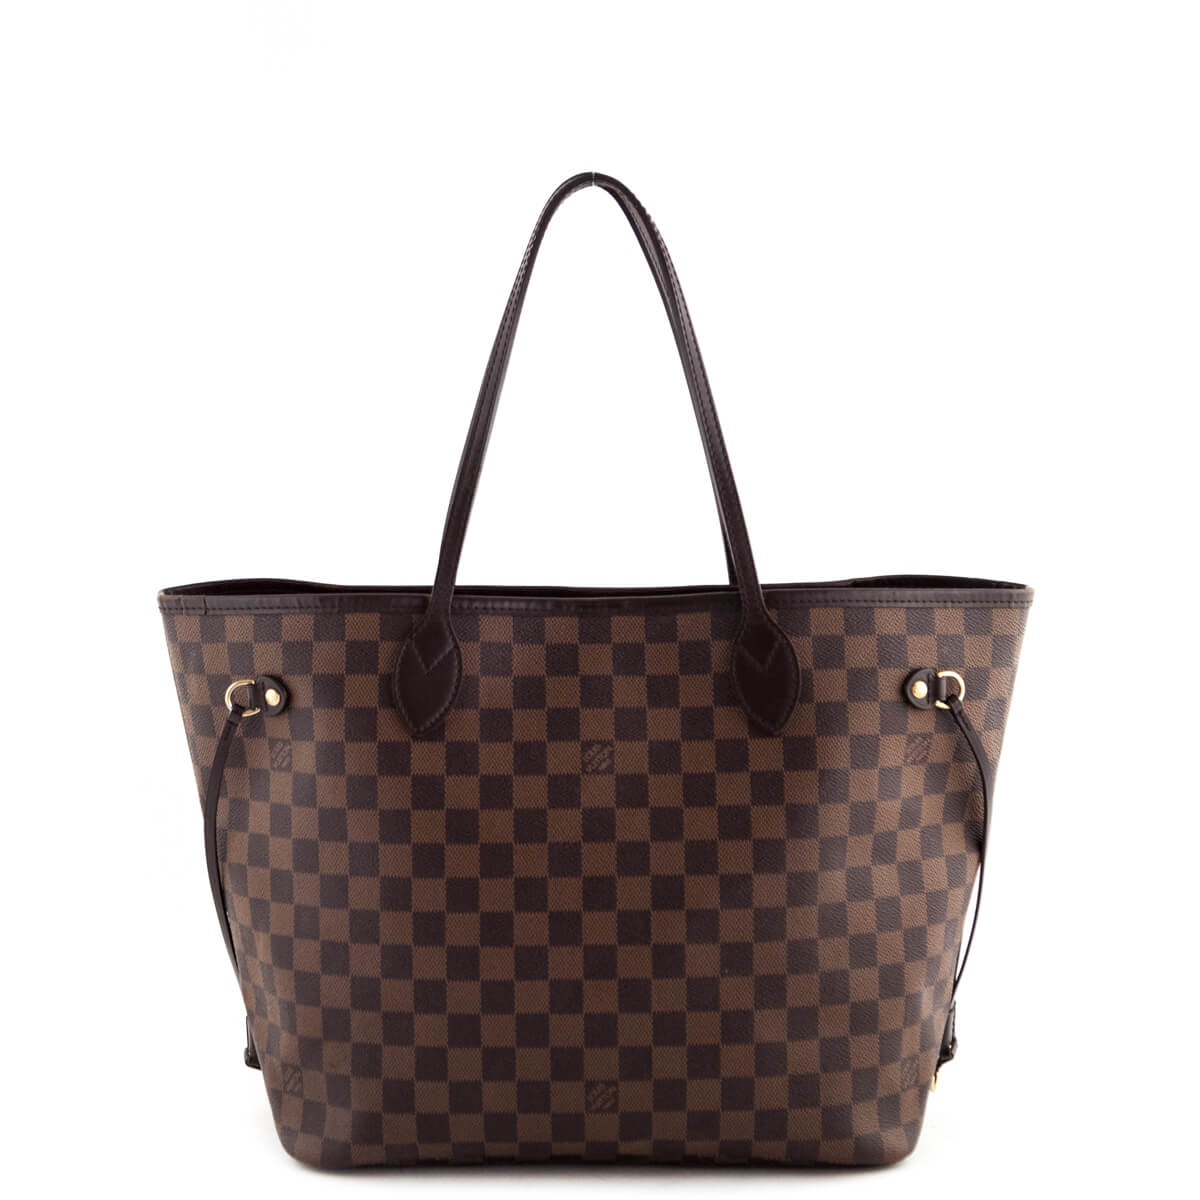 Louis Vuitton Damier Ebene Neverfull MM - LOVE that BAG - Preowned  Authentic Designer Handbags ... 68c97171cfe07